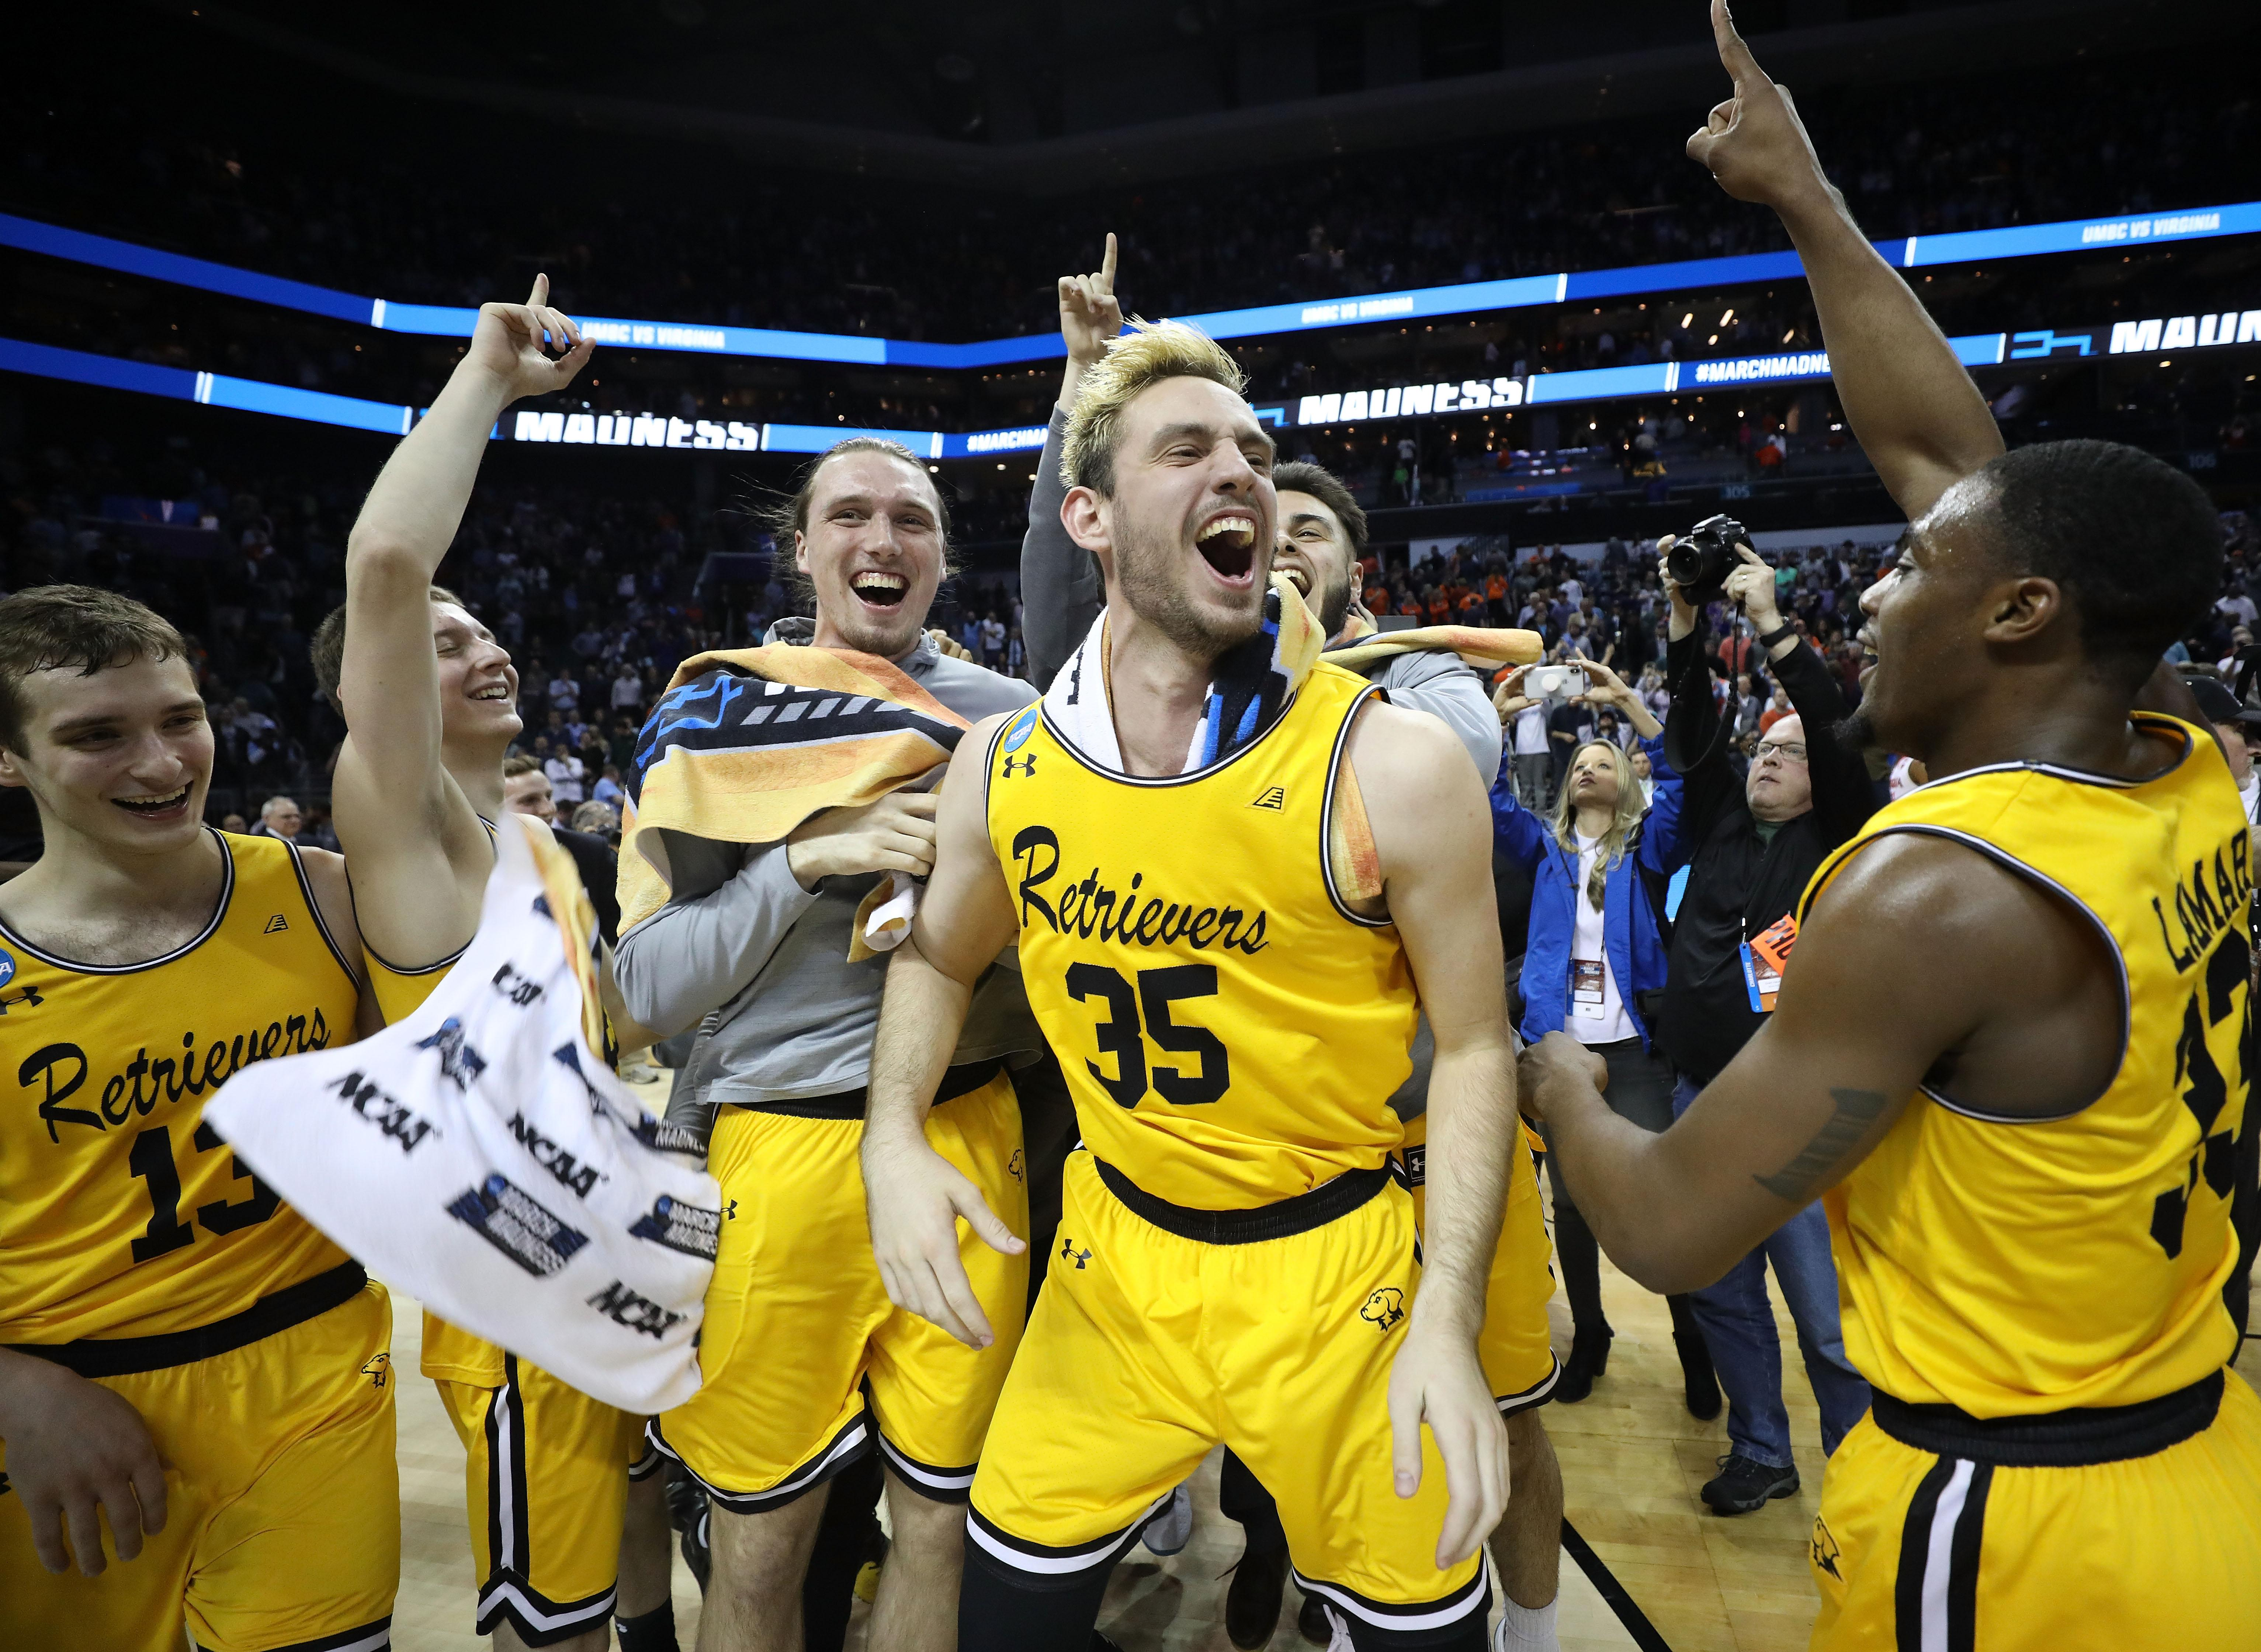 CHARLOTTE, NC - MARCH 16:  The UMBC Retrievers bench reacts to their 74-54 victory over the Virginia Cavaliers during the first round of the 2018 NCAA Men's Basketball Tournament at Spectrum Center on March 16, 2018 in Charlotte, North Carolina.  (Photo by Streeter Lecka/Getty Images)